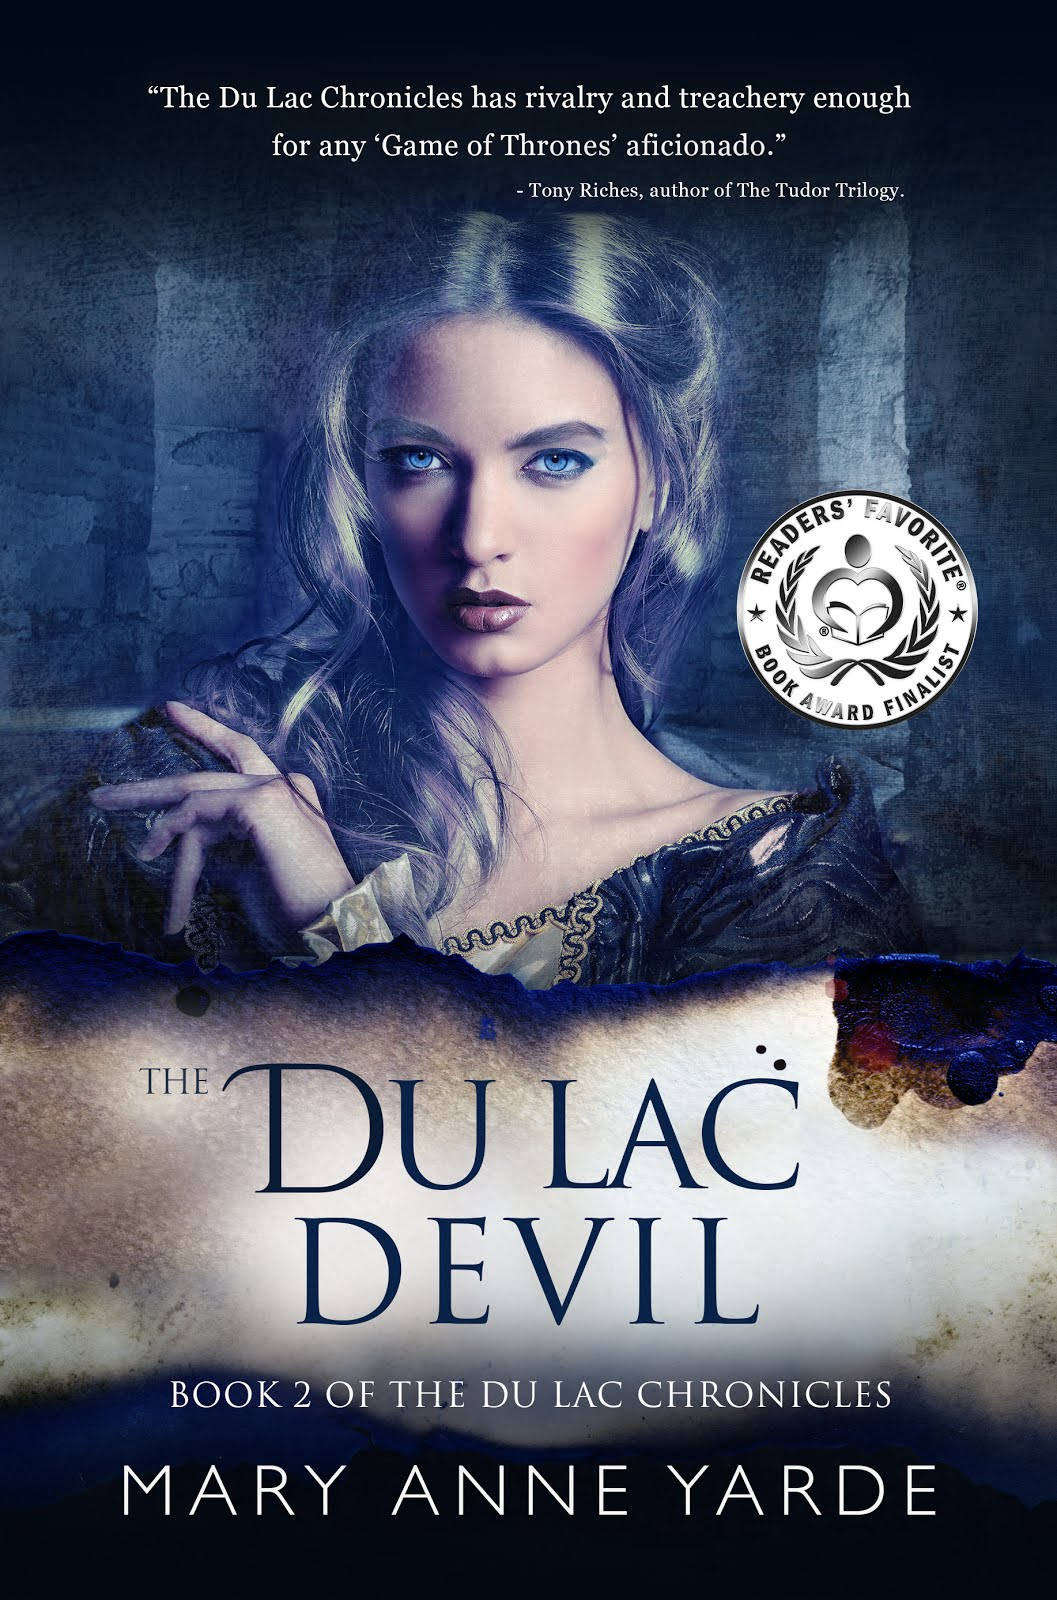 The Du Lac Devil: Book 2